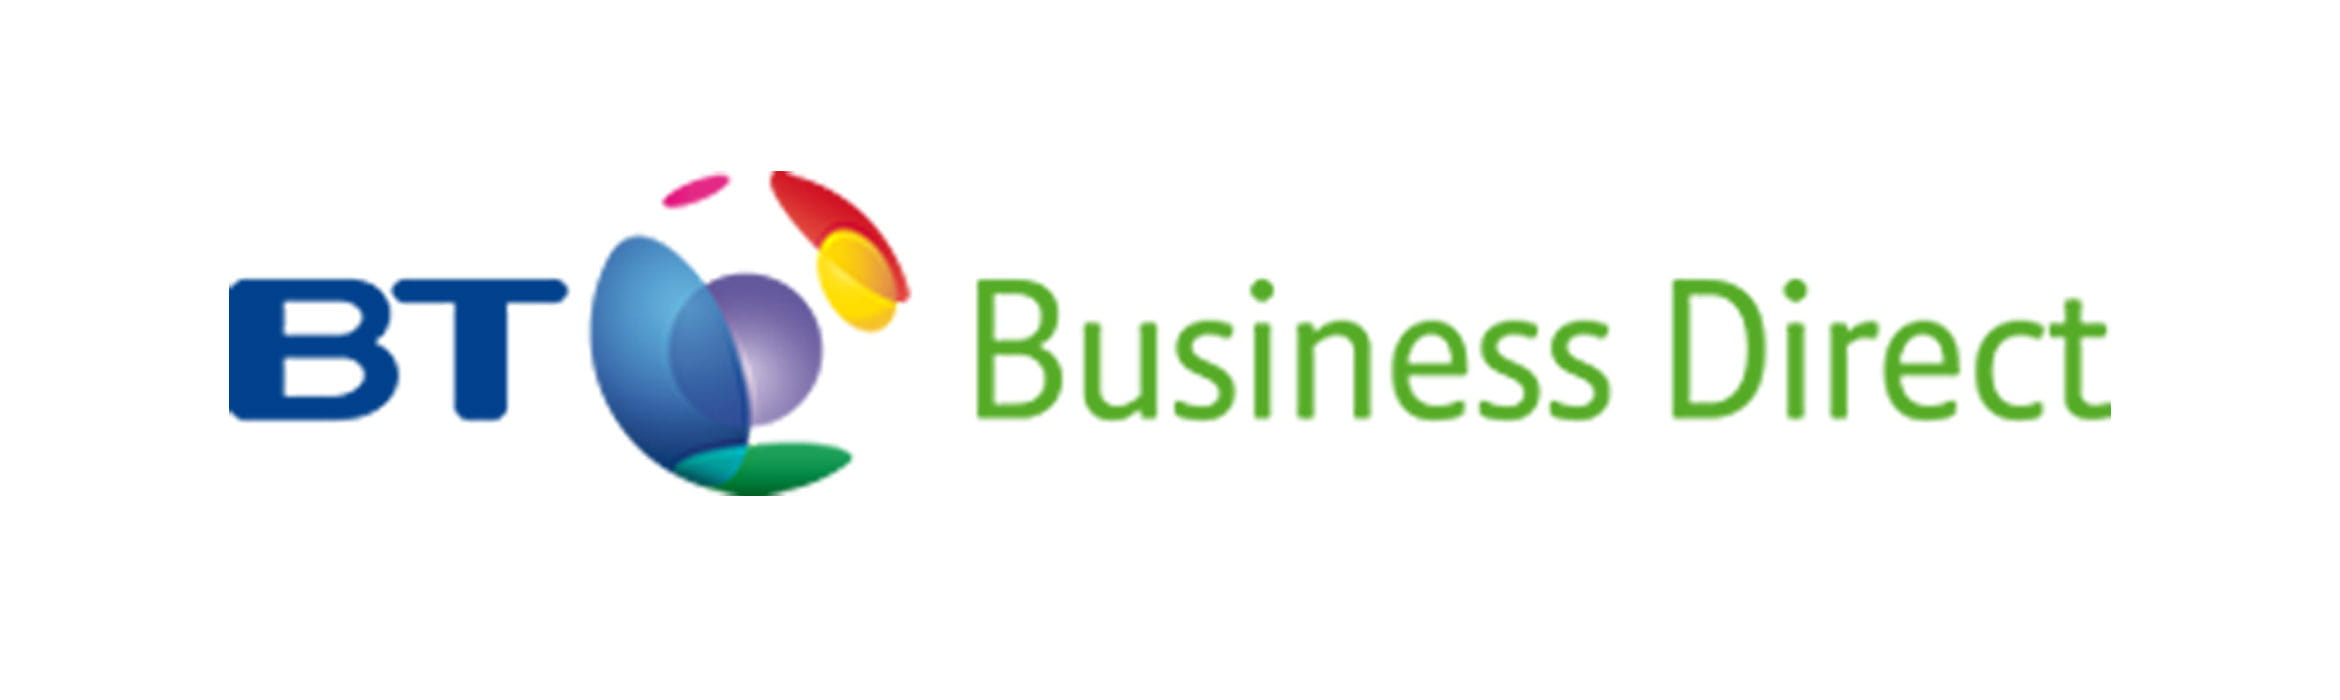 bt business direct logo